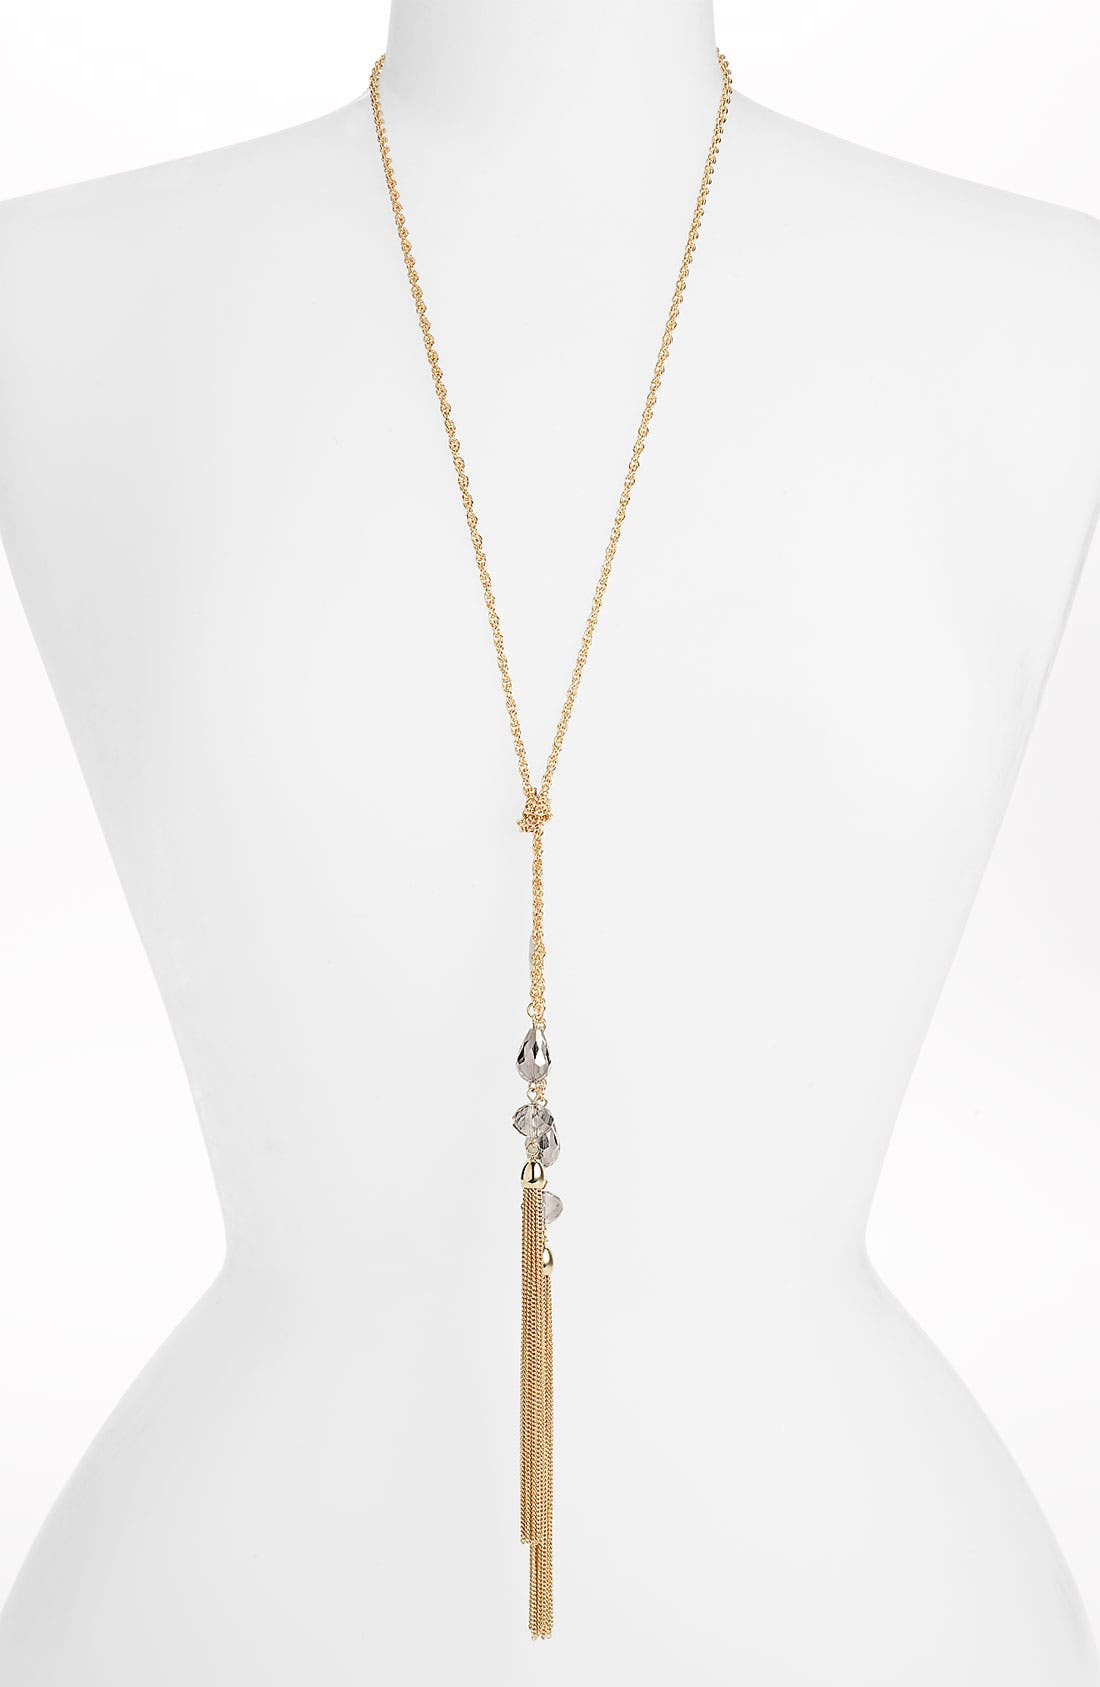 Main Image - Cara Tassel Y-Necklace